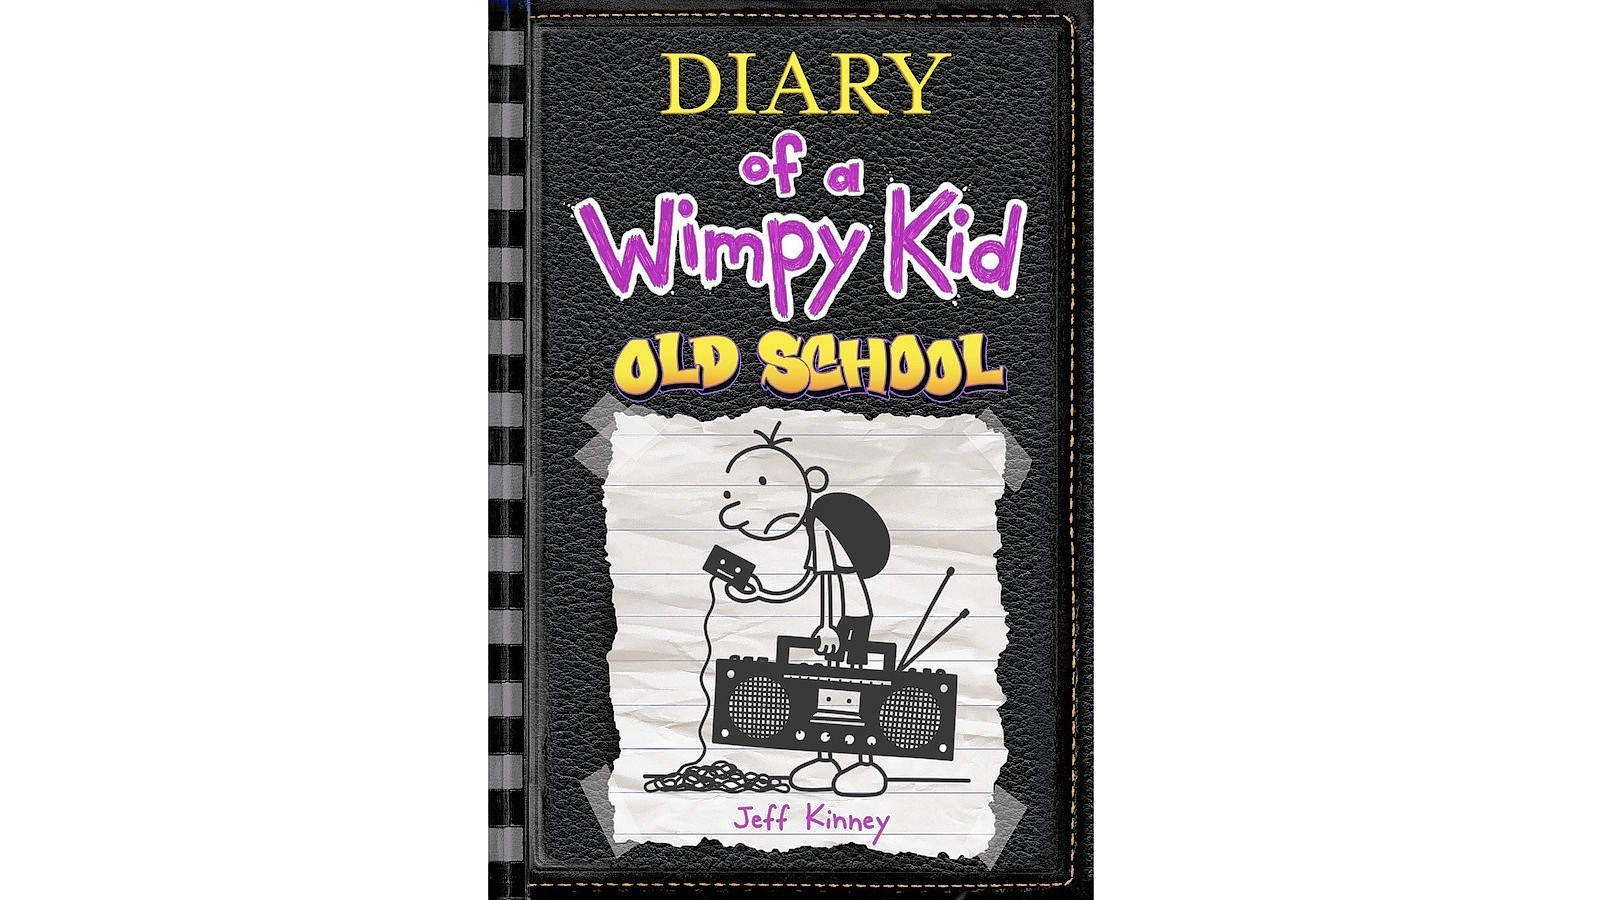 So what are kids reading these days a whole lot of wimpy kid a whole lot of wimpy kid chicago tribune solutioingenieria Choice Image